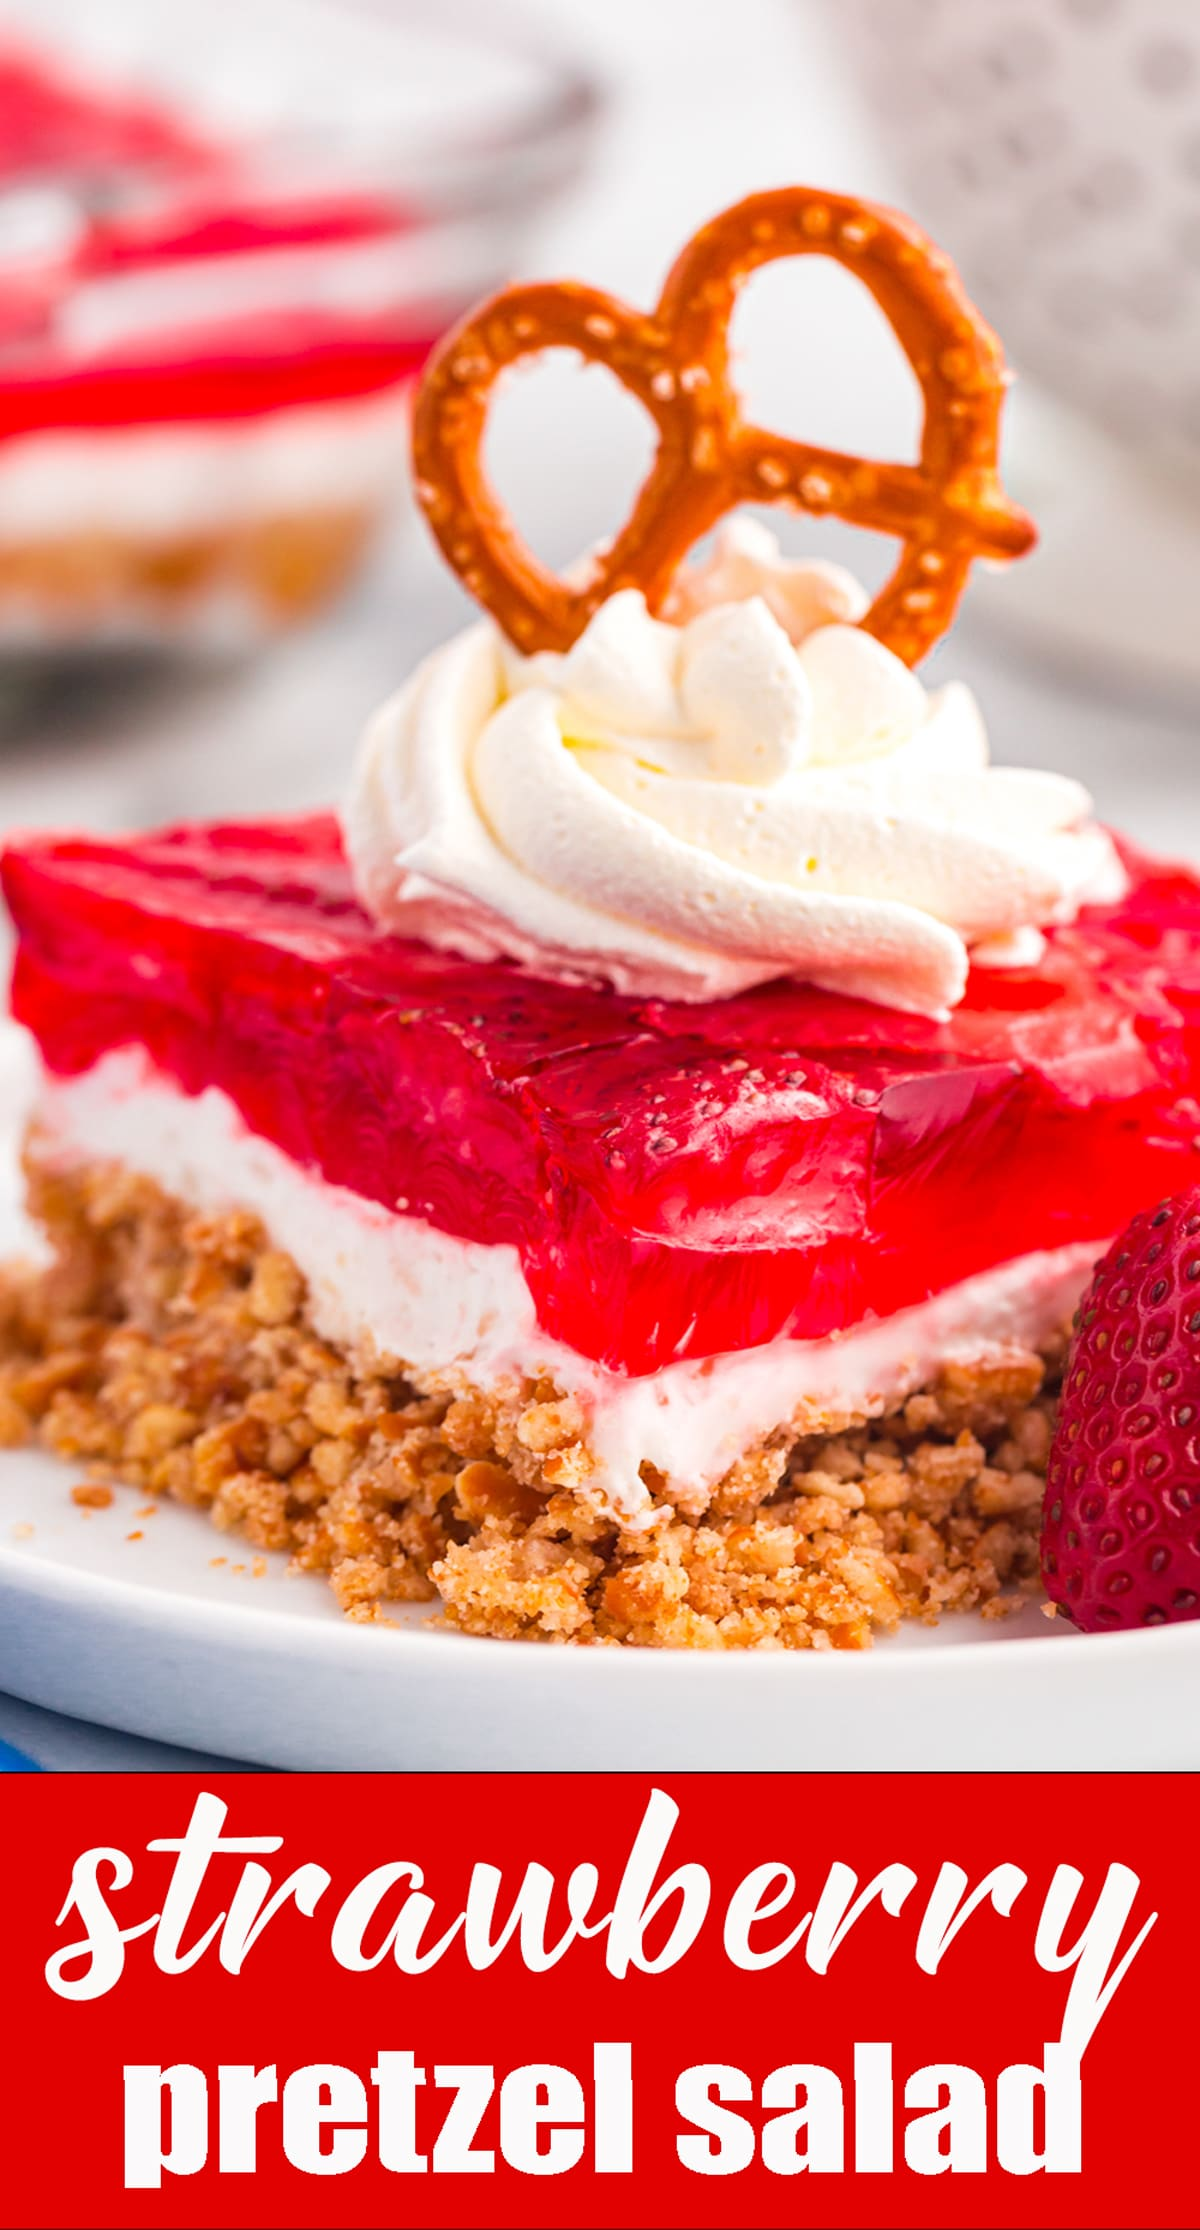 The classic summer dessert! This Strawberry Pretzel Salad recipe is the perfect combination of salty and sweet. It's a favorite at picnics and potlucks. via @tastesoflizzyt